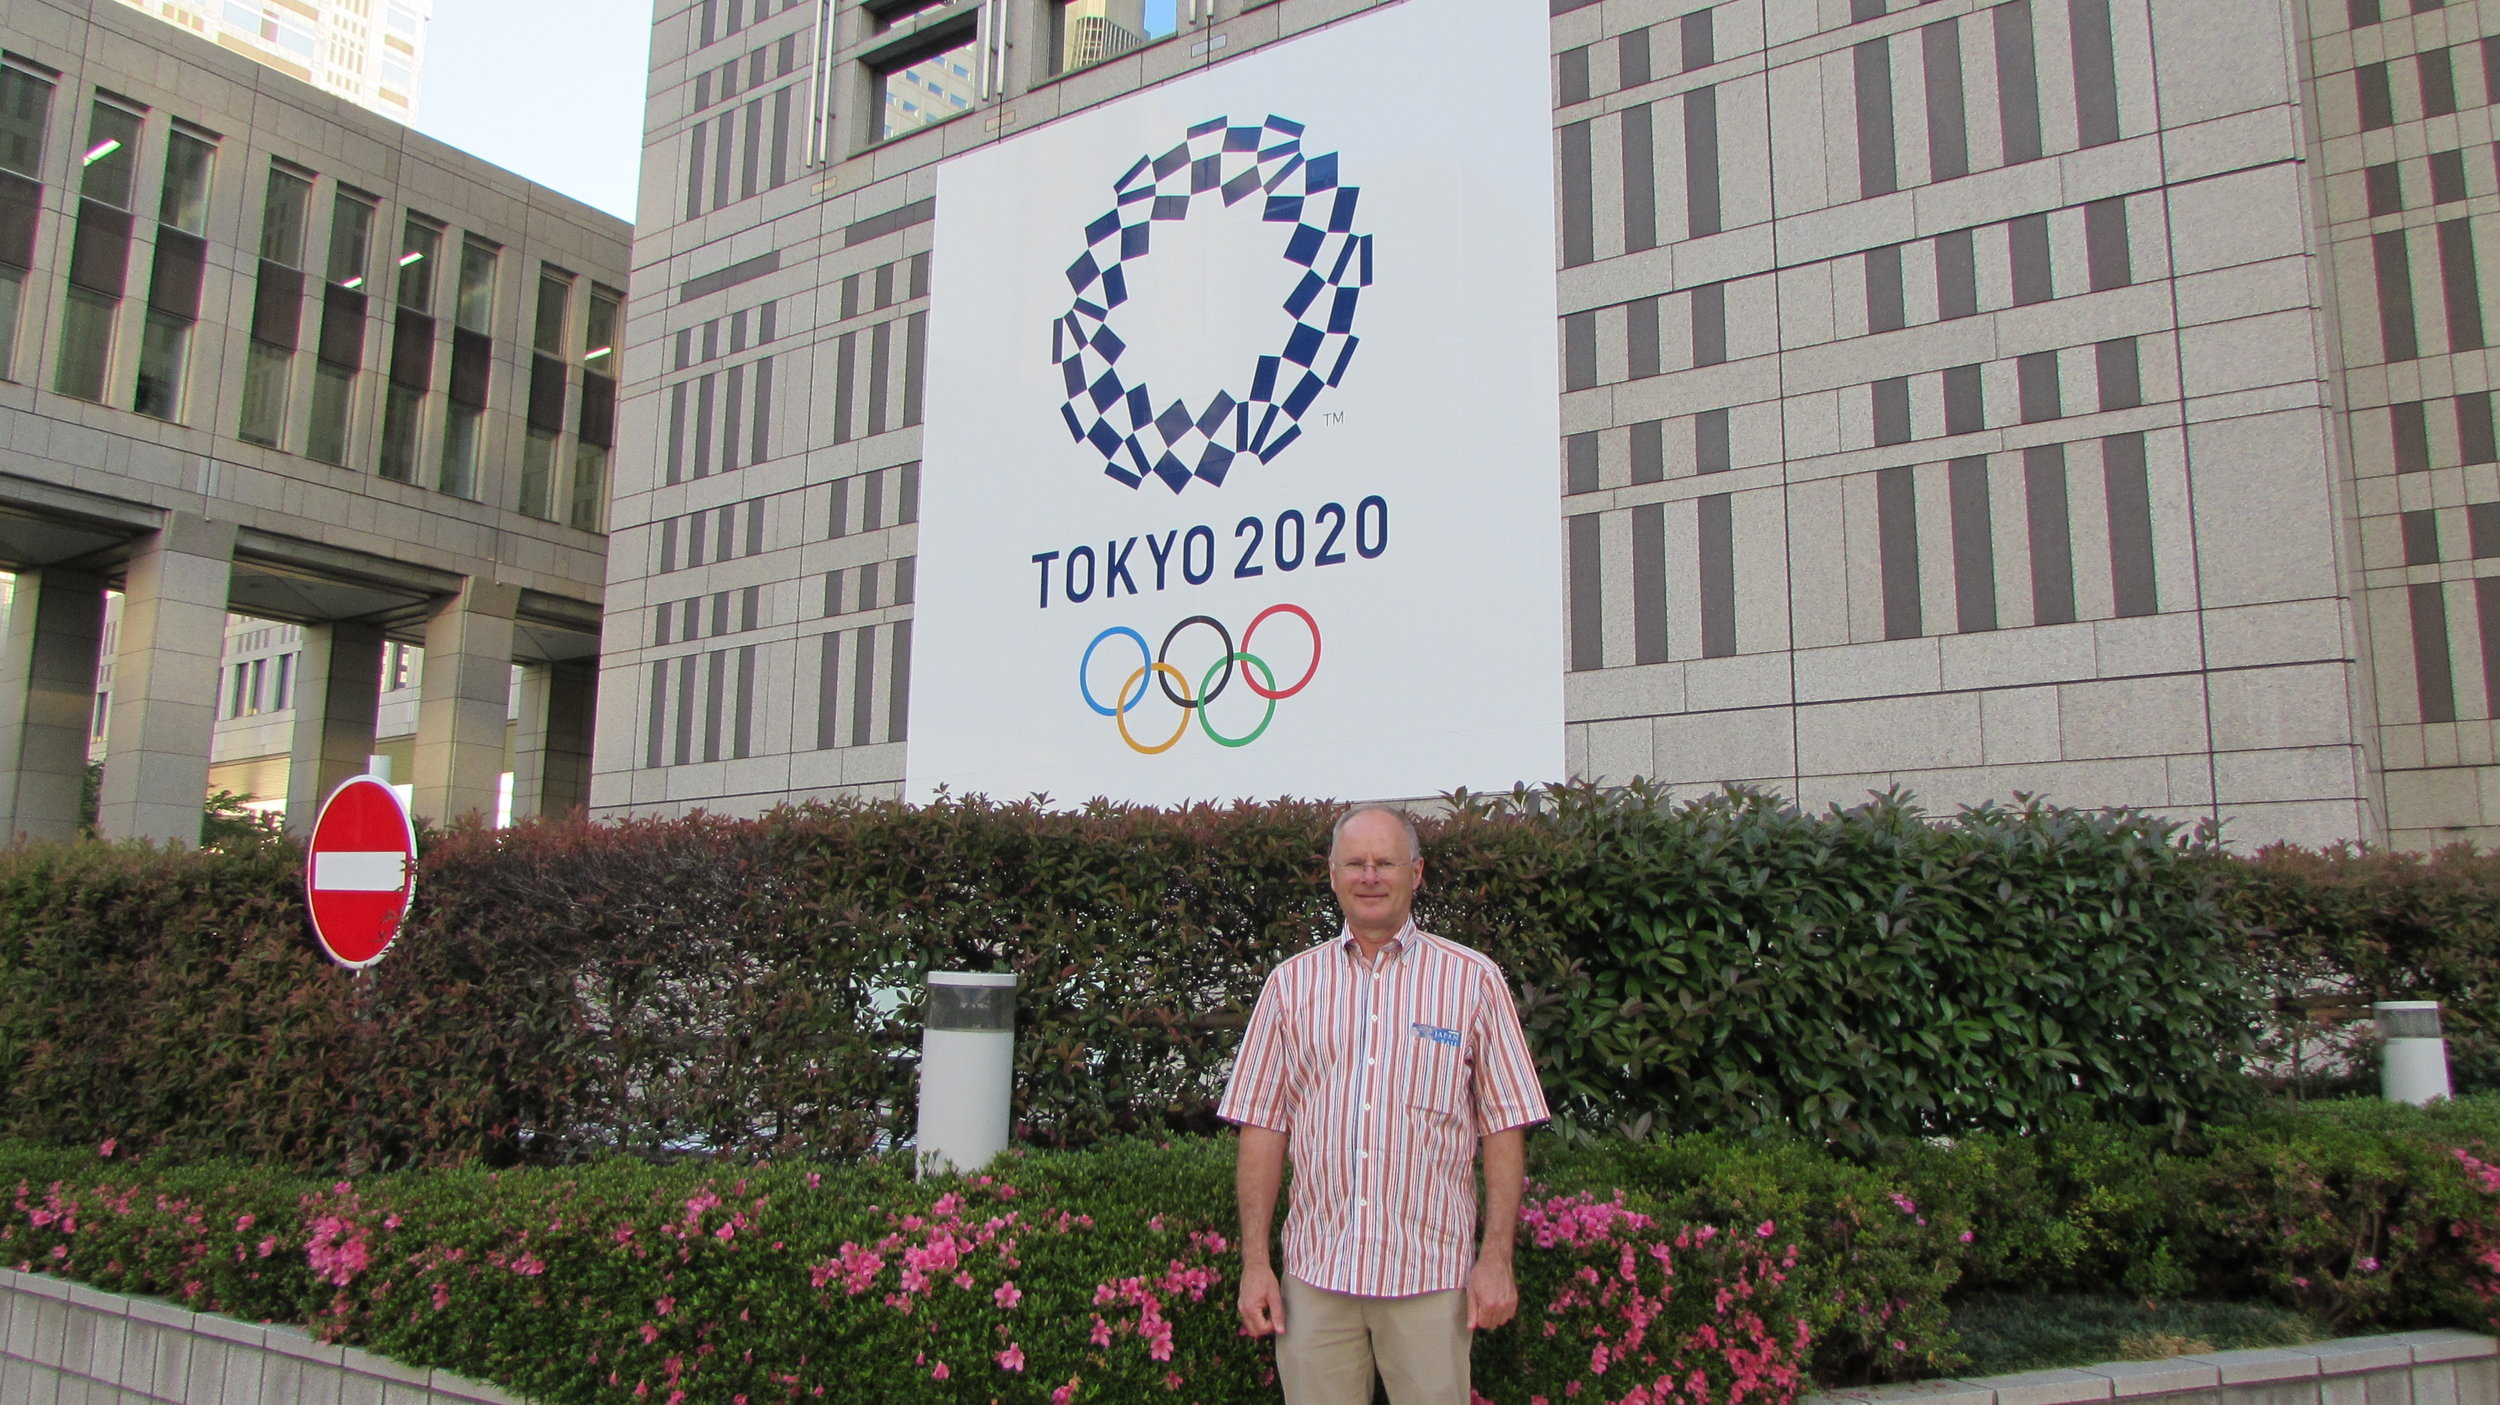 In front of the City Hall in Tokyo